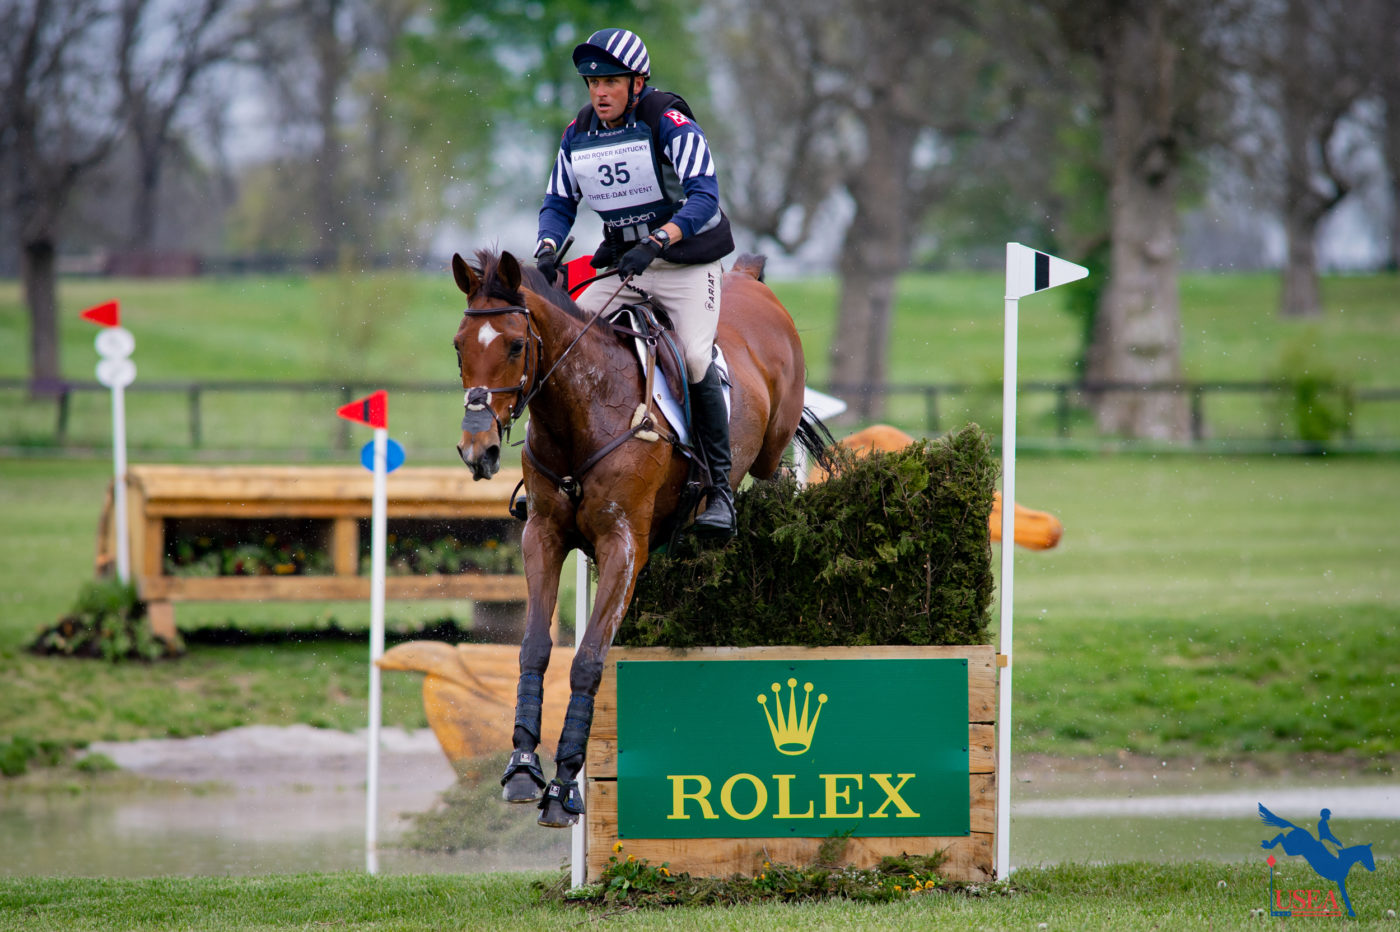 CCI5*-L - 2nd - Boyd Martin and On Cue. Erin Gilmore Photo.